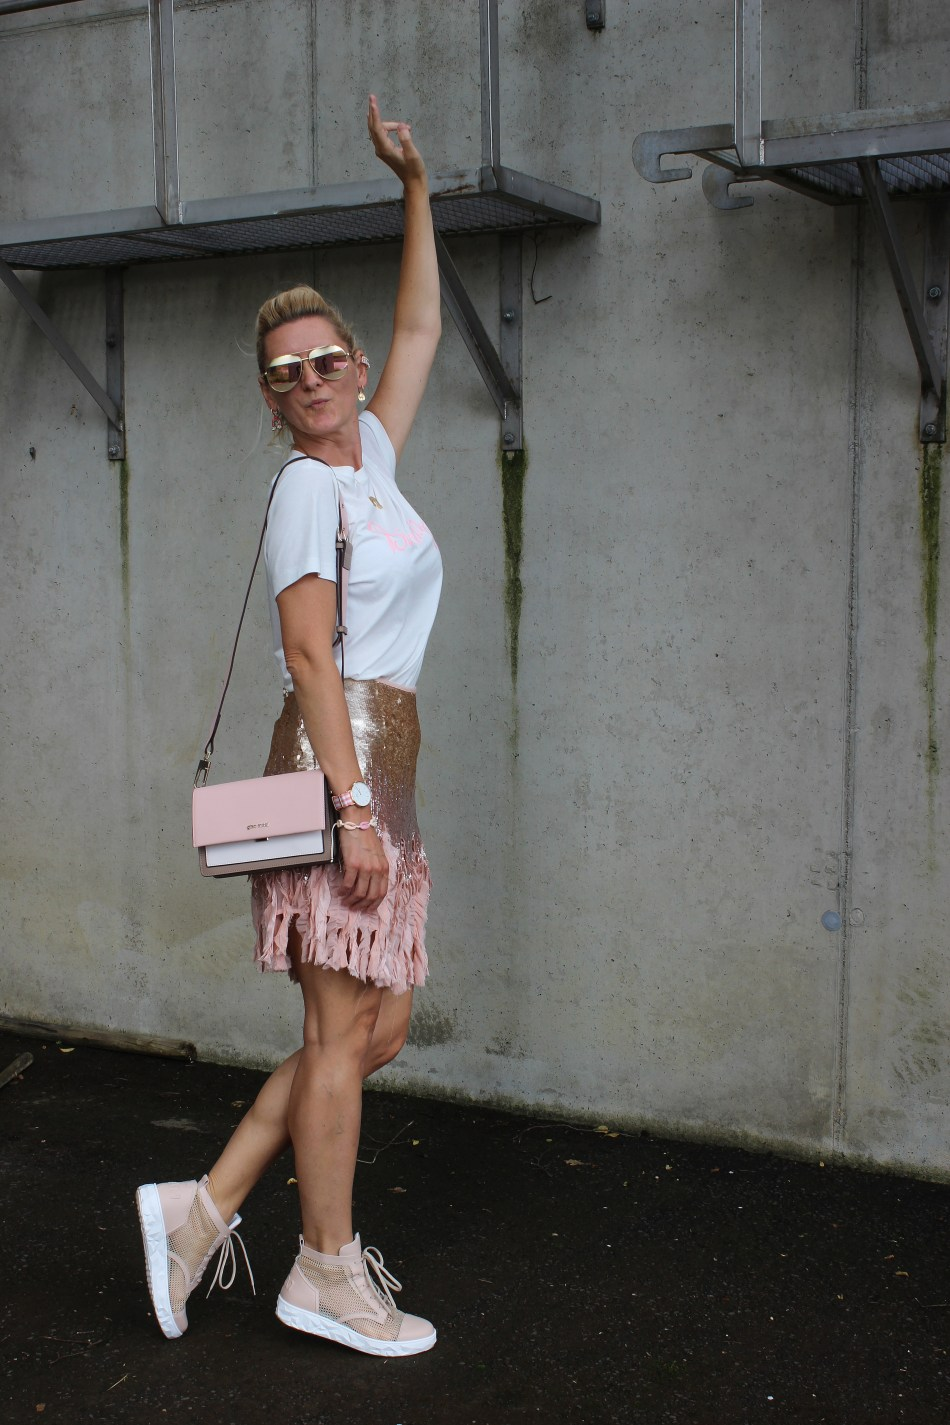 Sevenamofficial-Sneakers-Italien-Rosa Sneakers-Glitzer Paillettenrock rosa-Handtasche CCC Shoes and Bags- Gino Rossi-Weißes Shirt-bloggerstyle-Tamara Prutsch